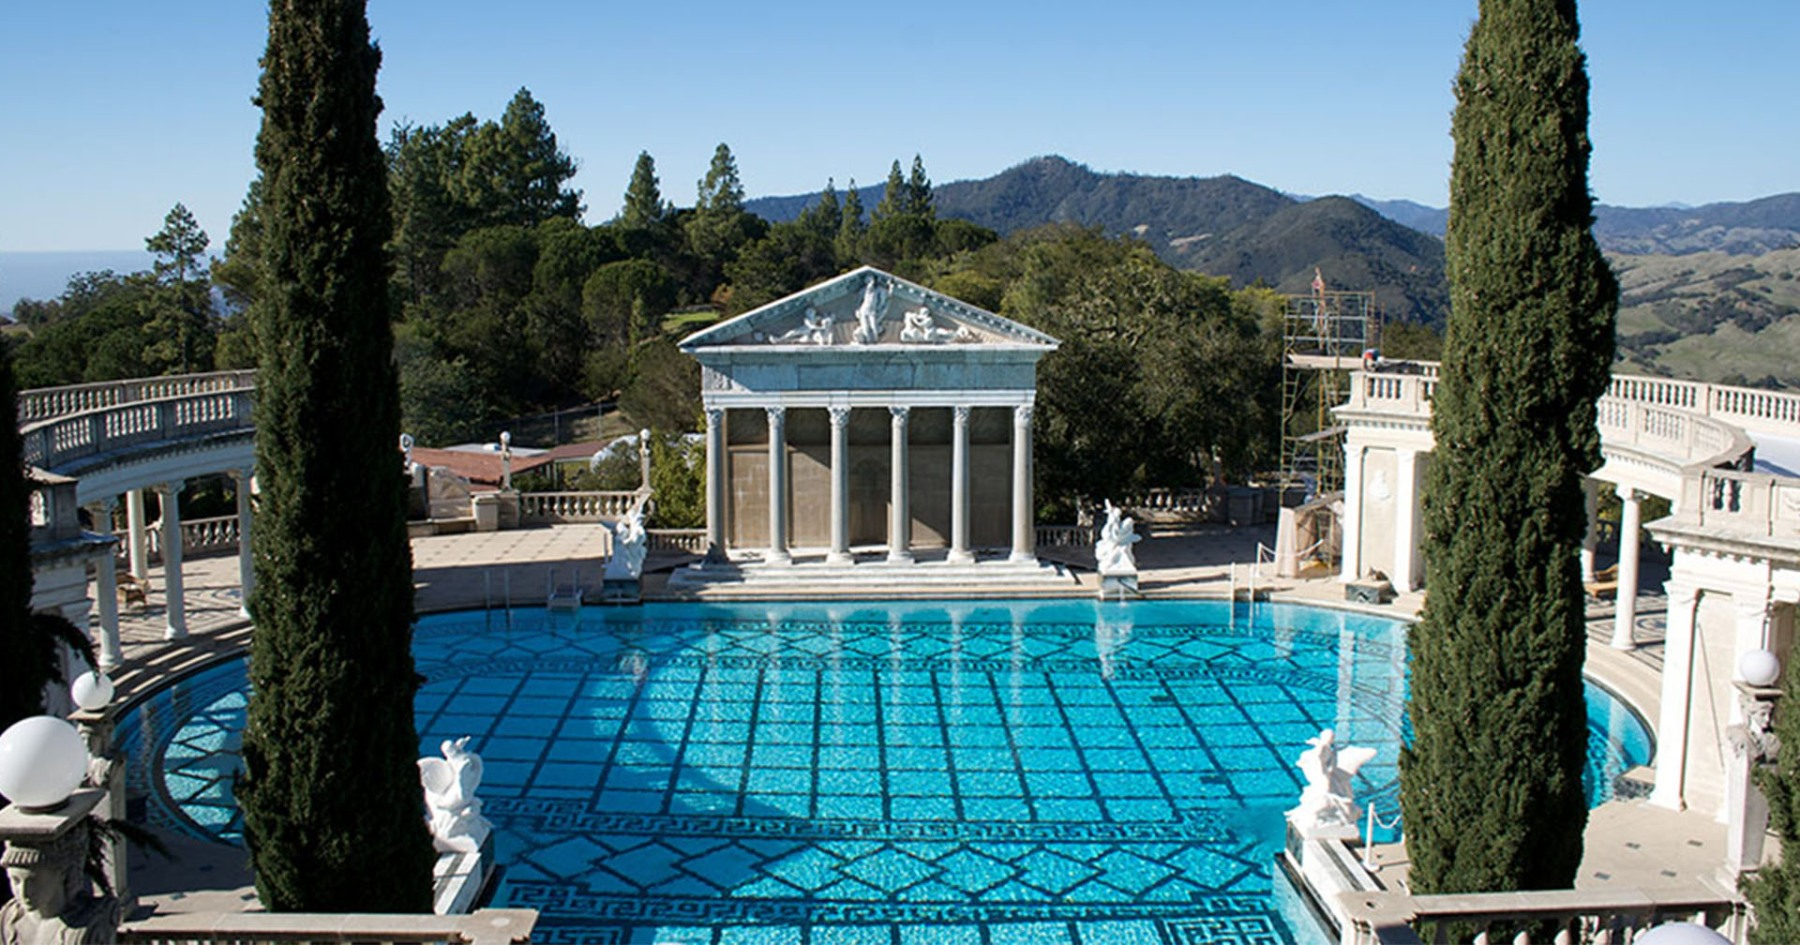 Alcatraz, Hearst Castle and the Bay Area's 5 Most Opulent Event Spaces